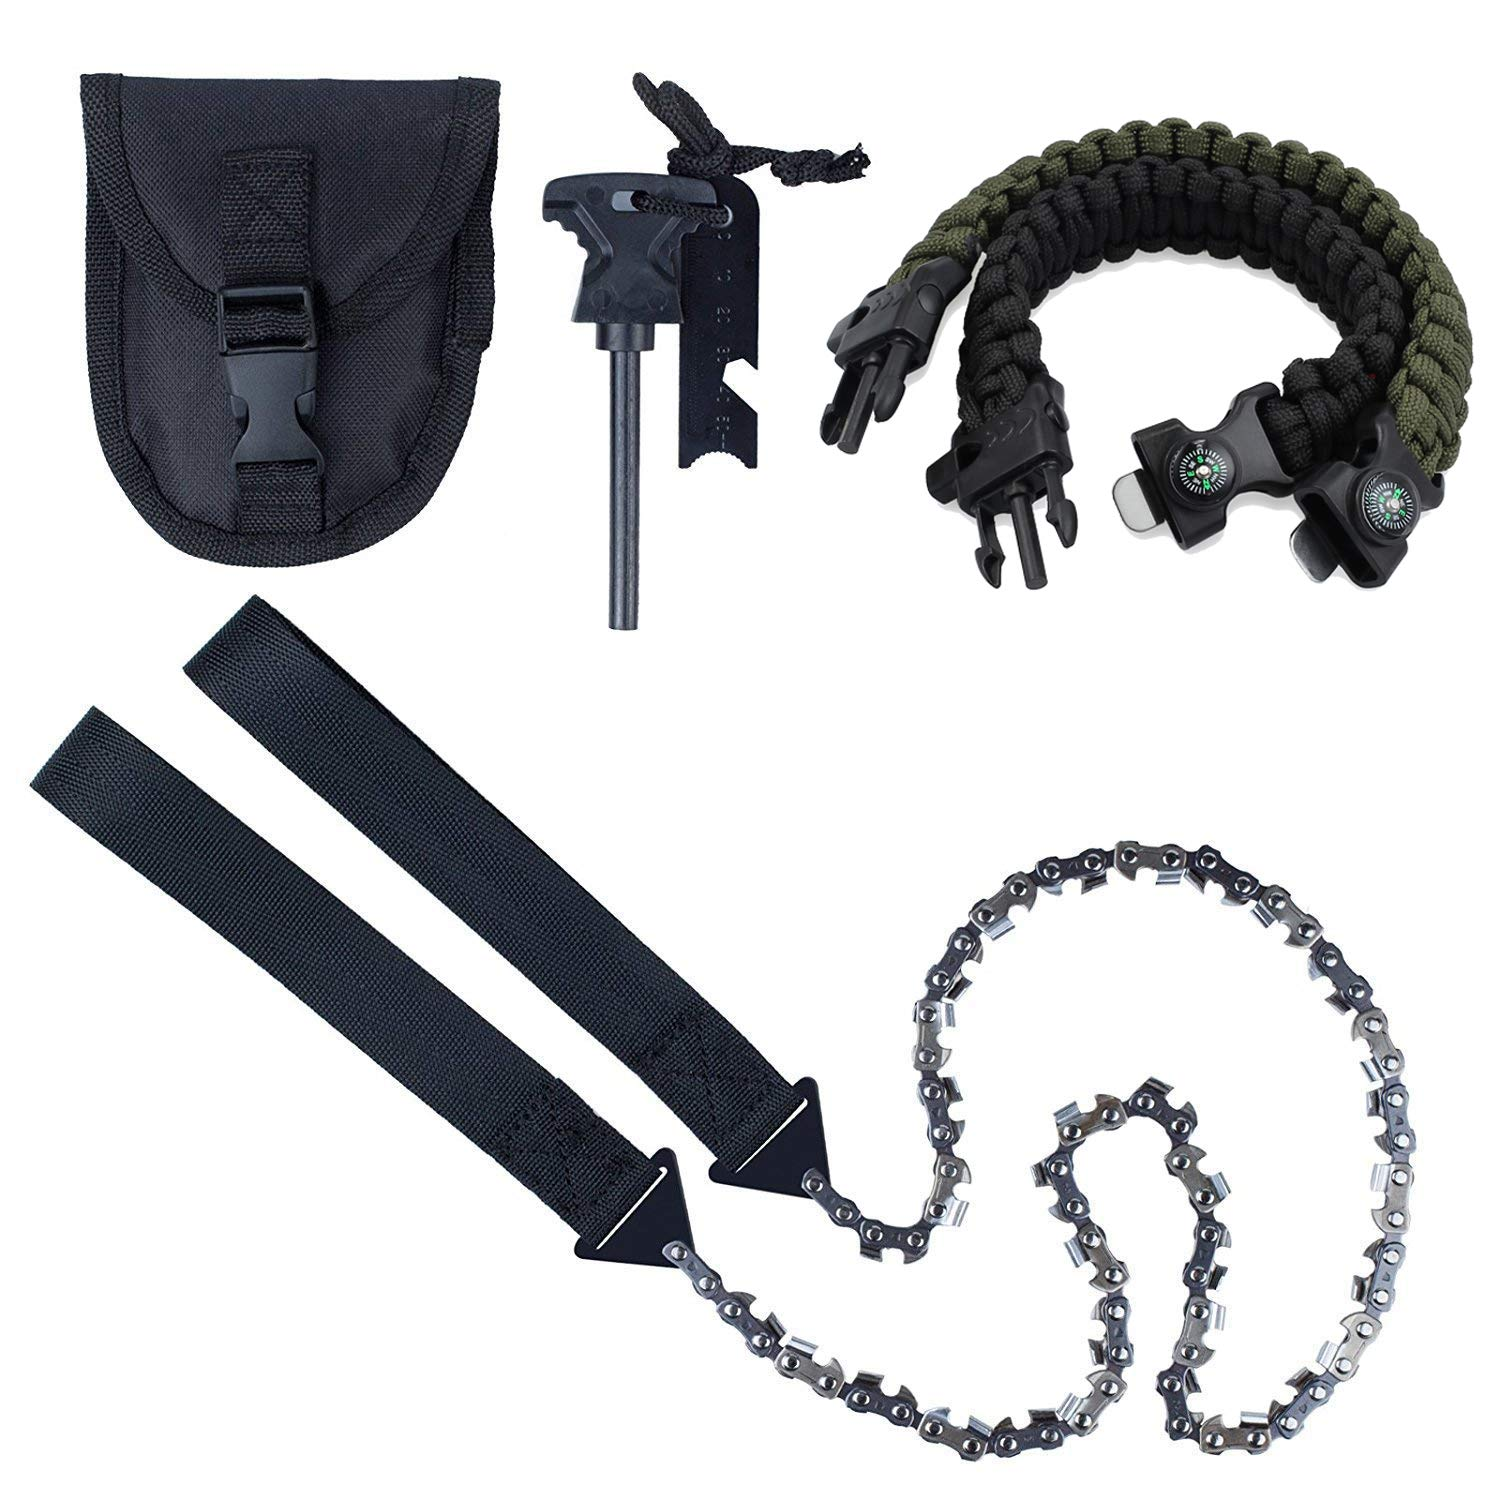 Pocket Hand Chainsaw Outdoor Survival Camping Hiking Wood Cutting Chain Saw Tool